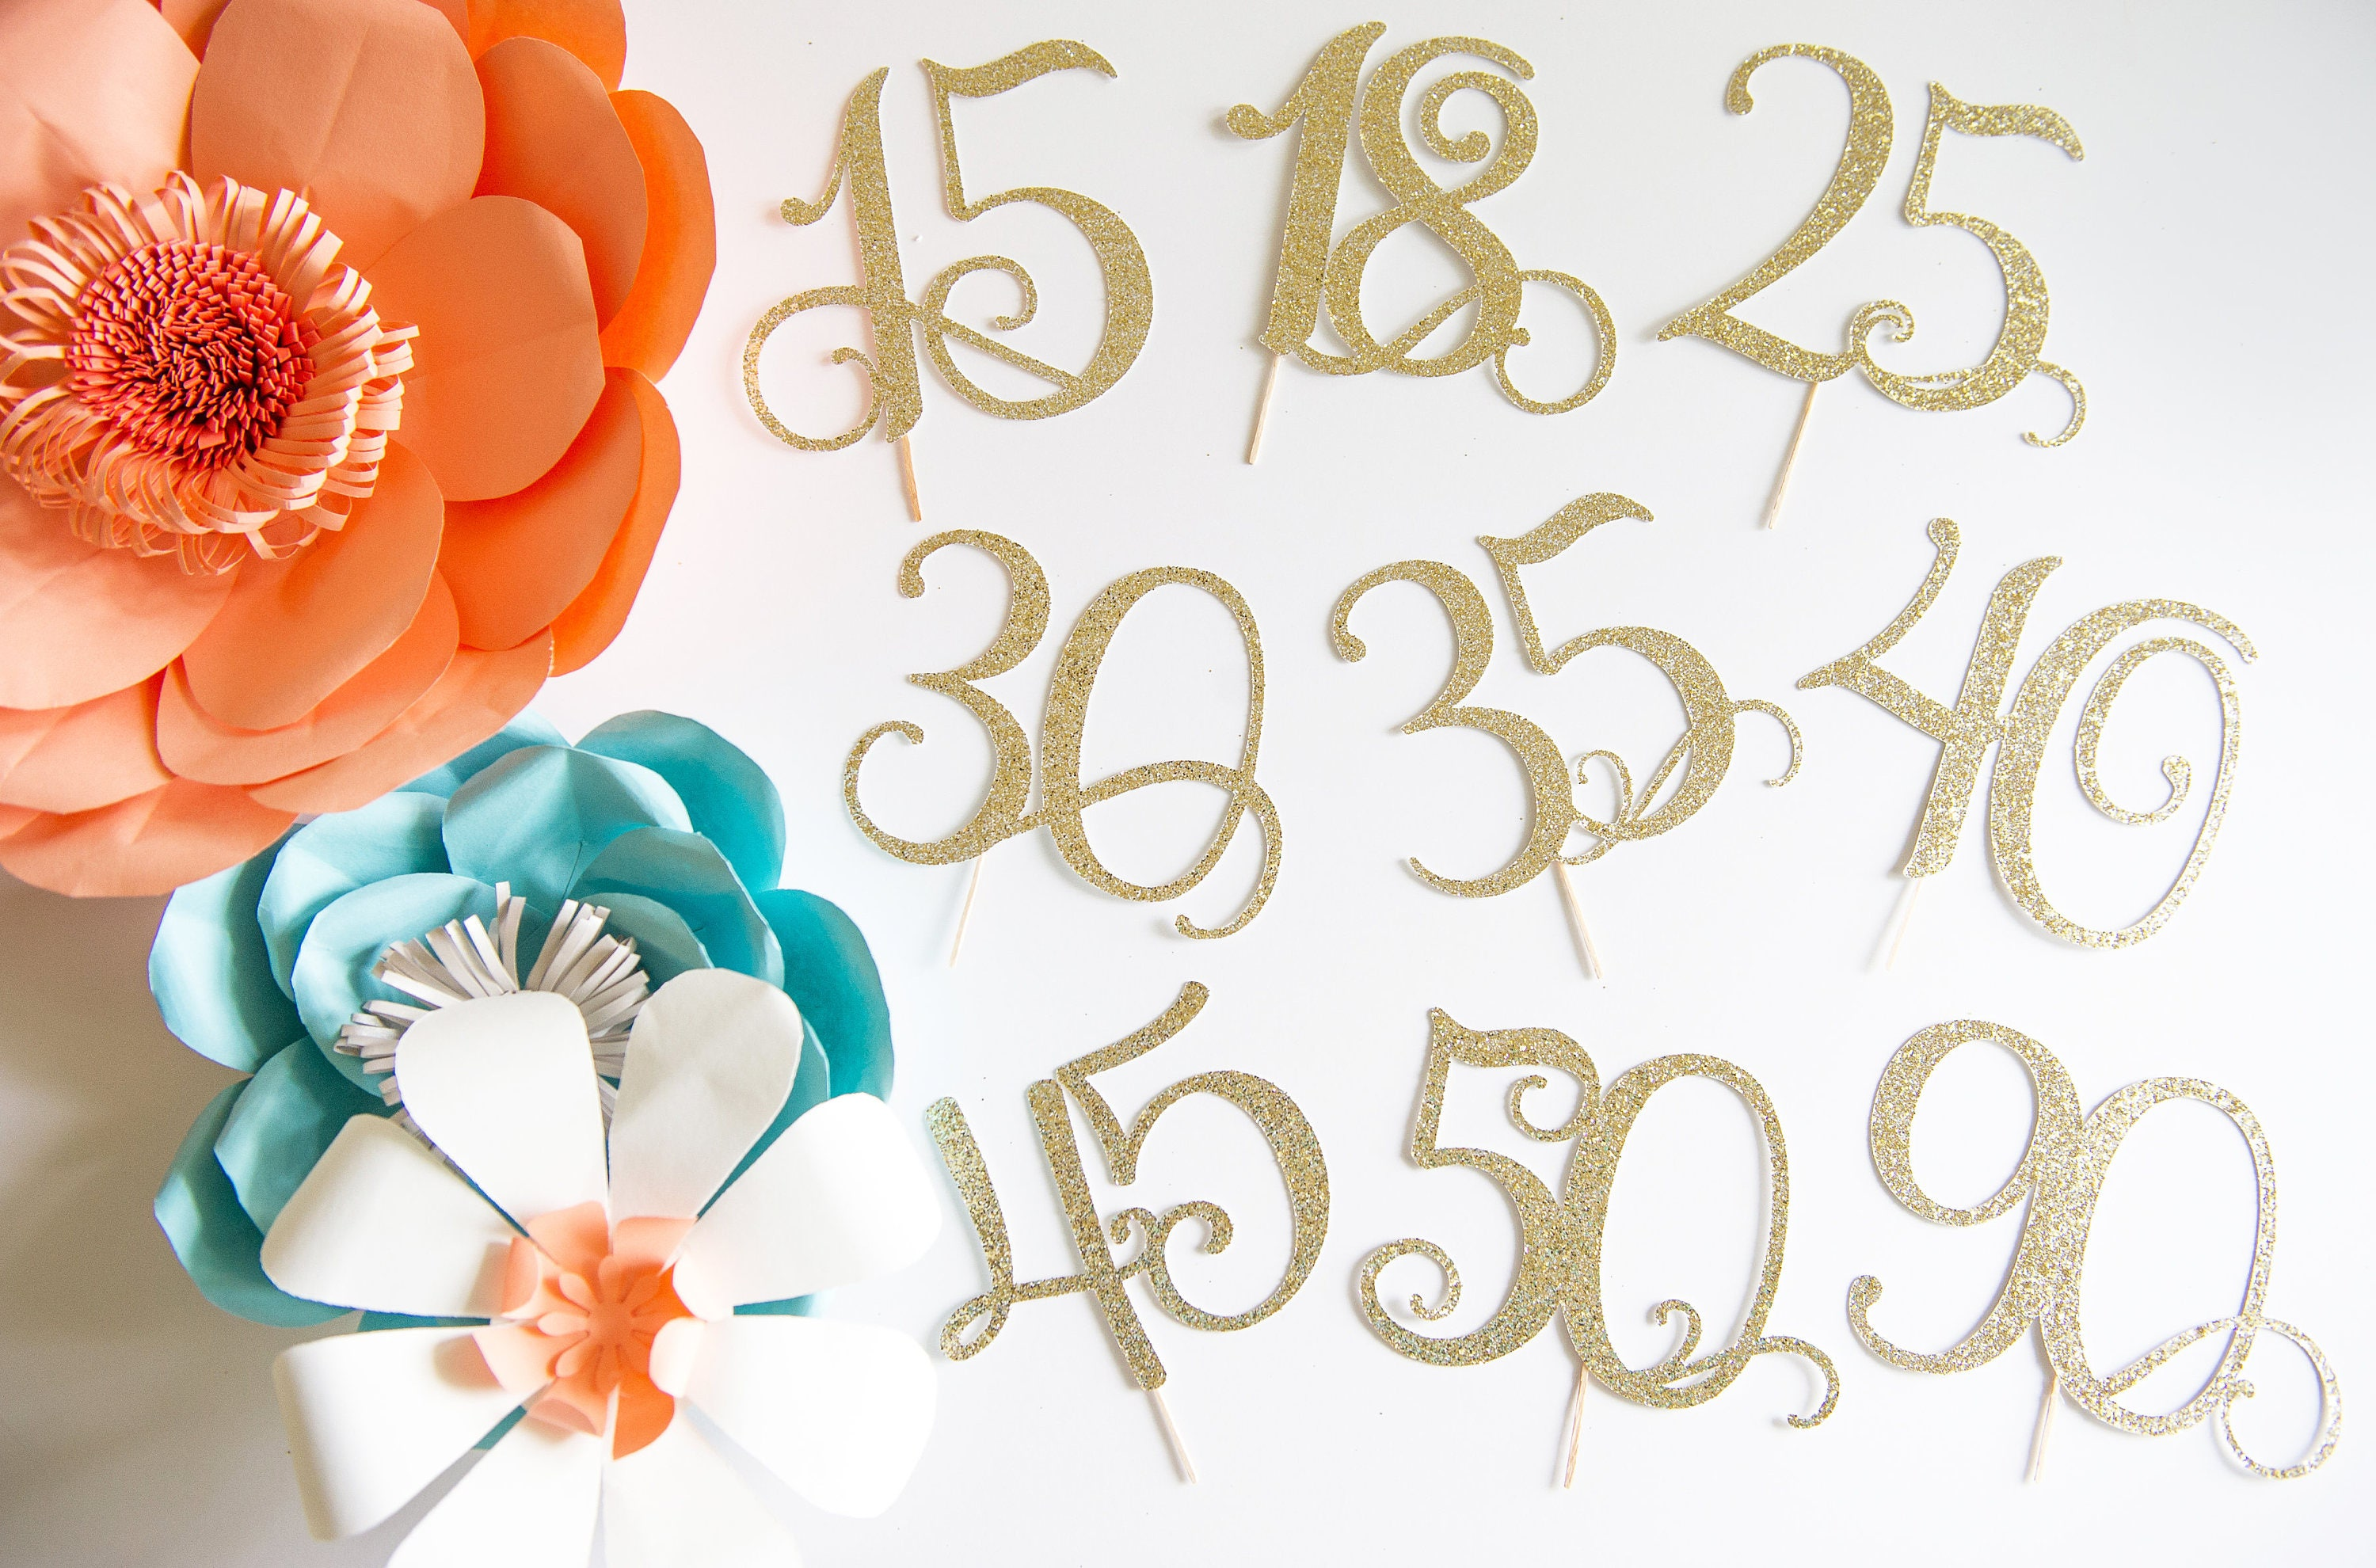 65th Wedding Anniversary Gift Ideas: 65th Birthday Party Ideas 65 Cake Topper